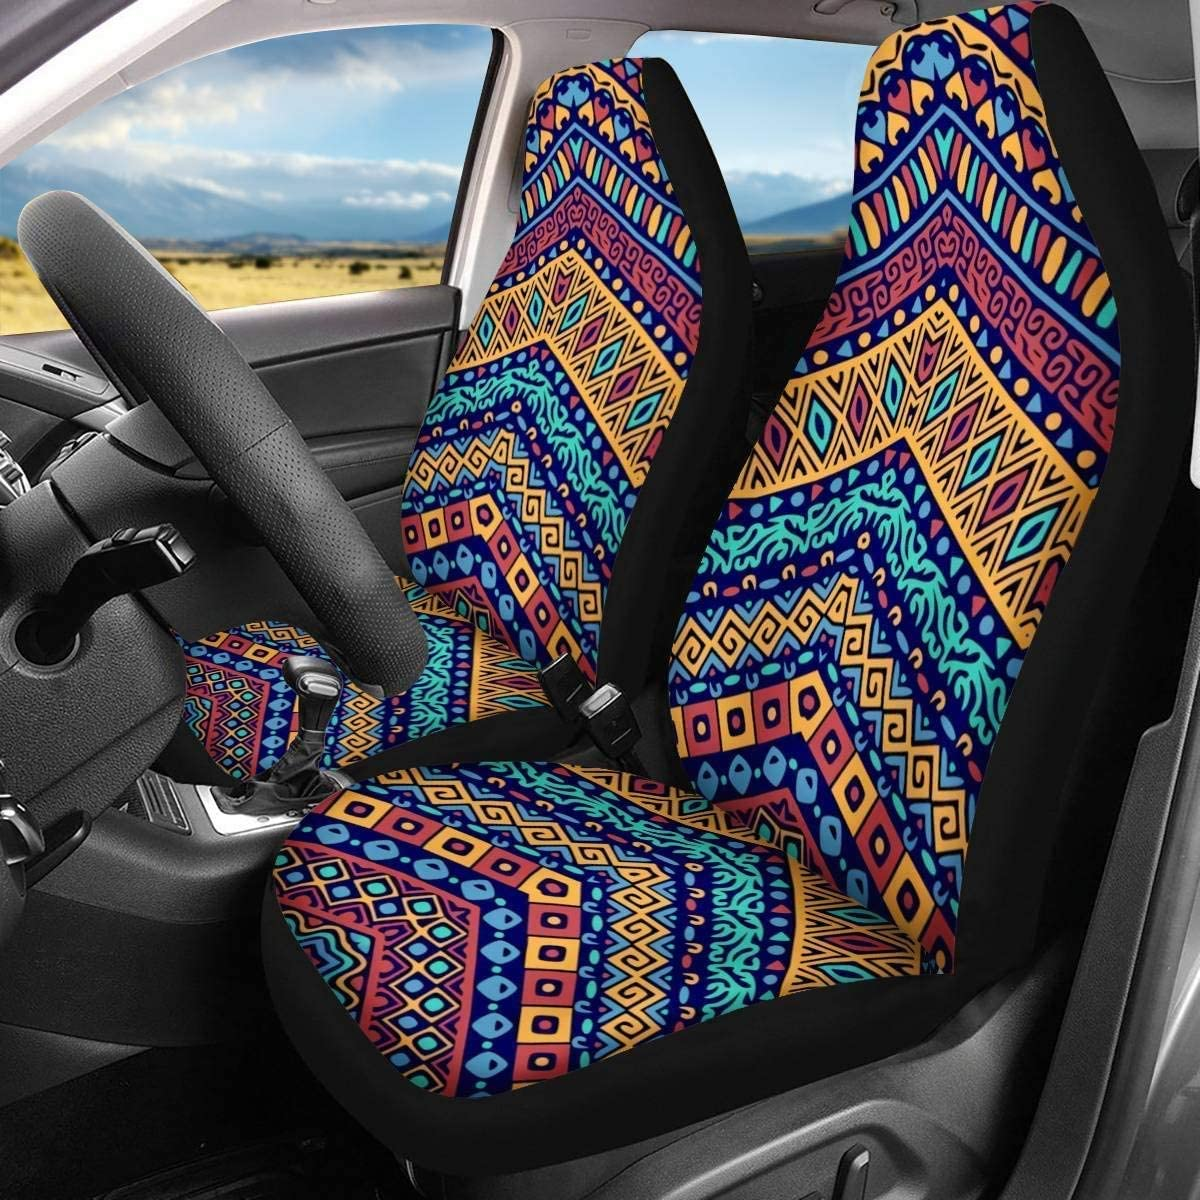 She is Life Itself Wild and Free Belidome Universal Fit 2 Pack Car Seat Covers Sunflower Black Background Design SUV Head Rest Cover Protectin